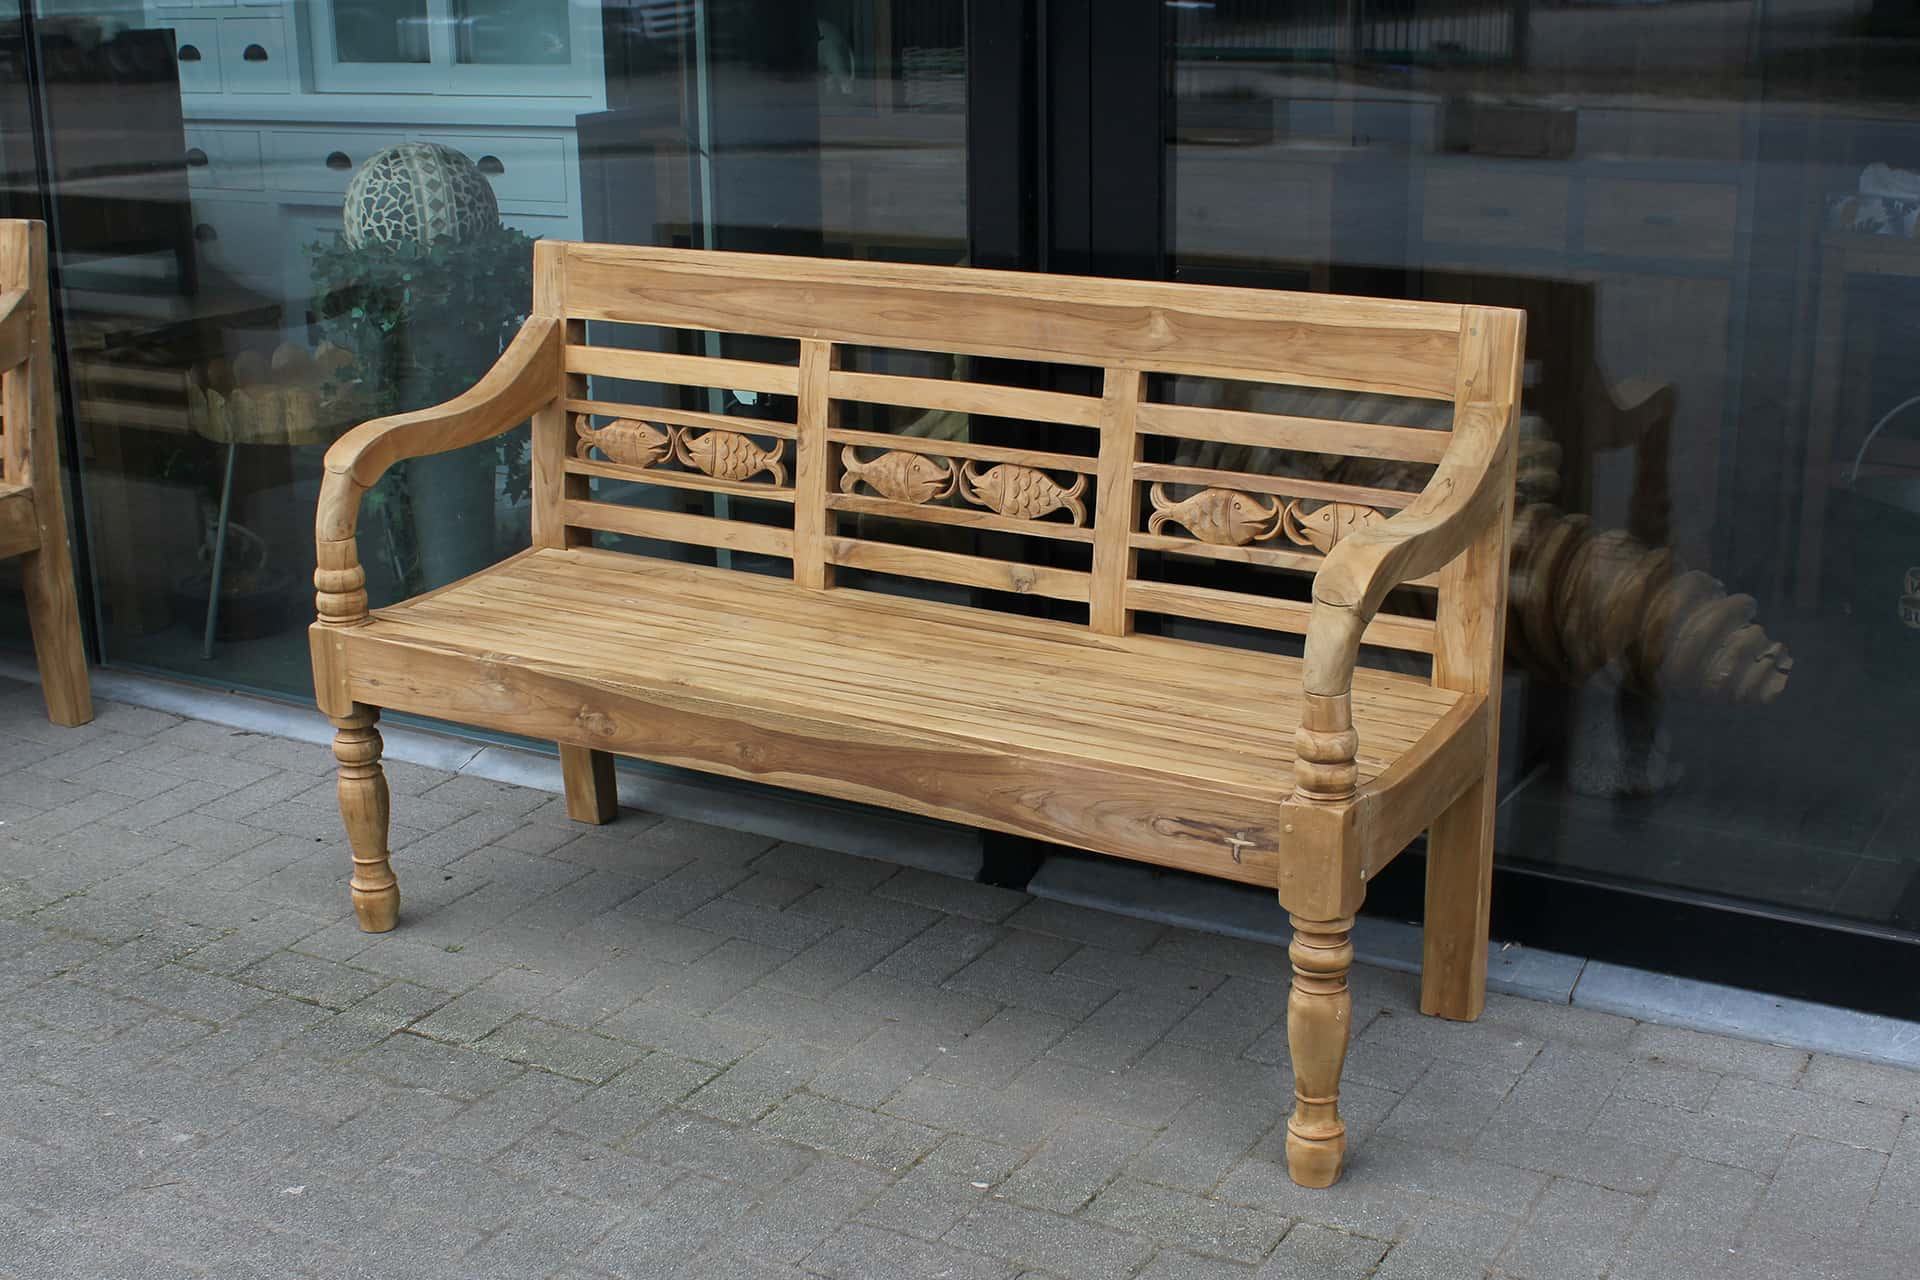 Bangku Ikan O150 | teak garden bench from Indonesia in modern smooth untreated teak. Teak station bench with fish motif.